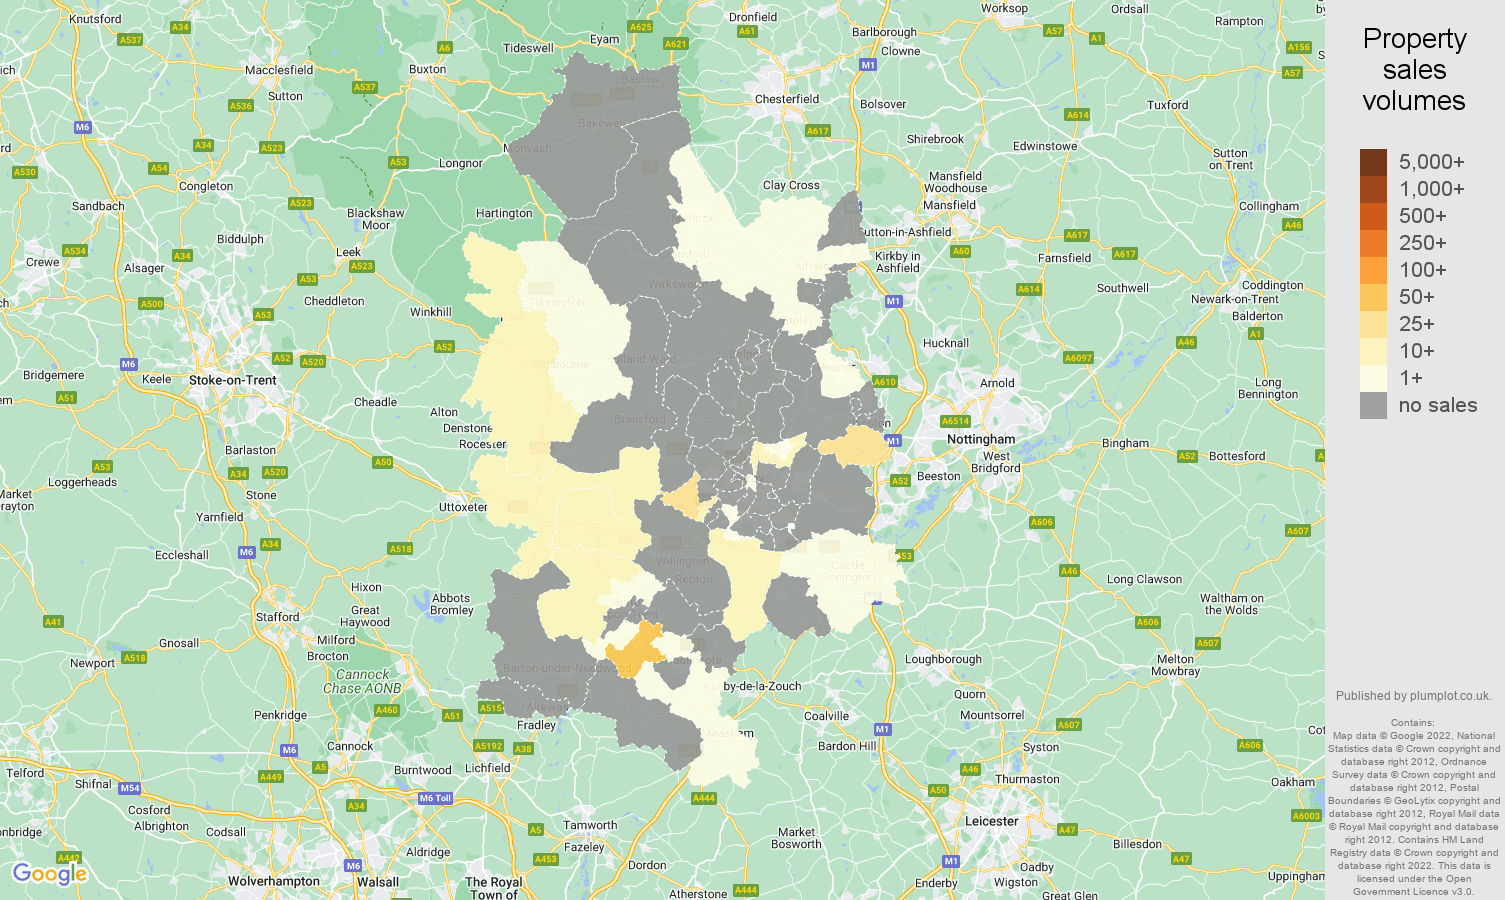 Derby map of sales of new properties